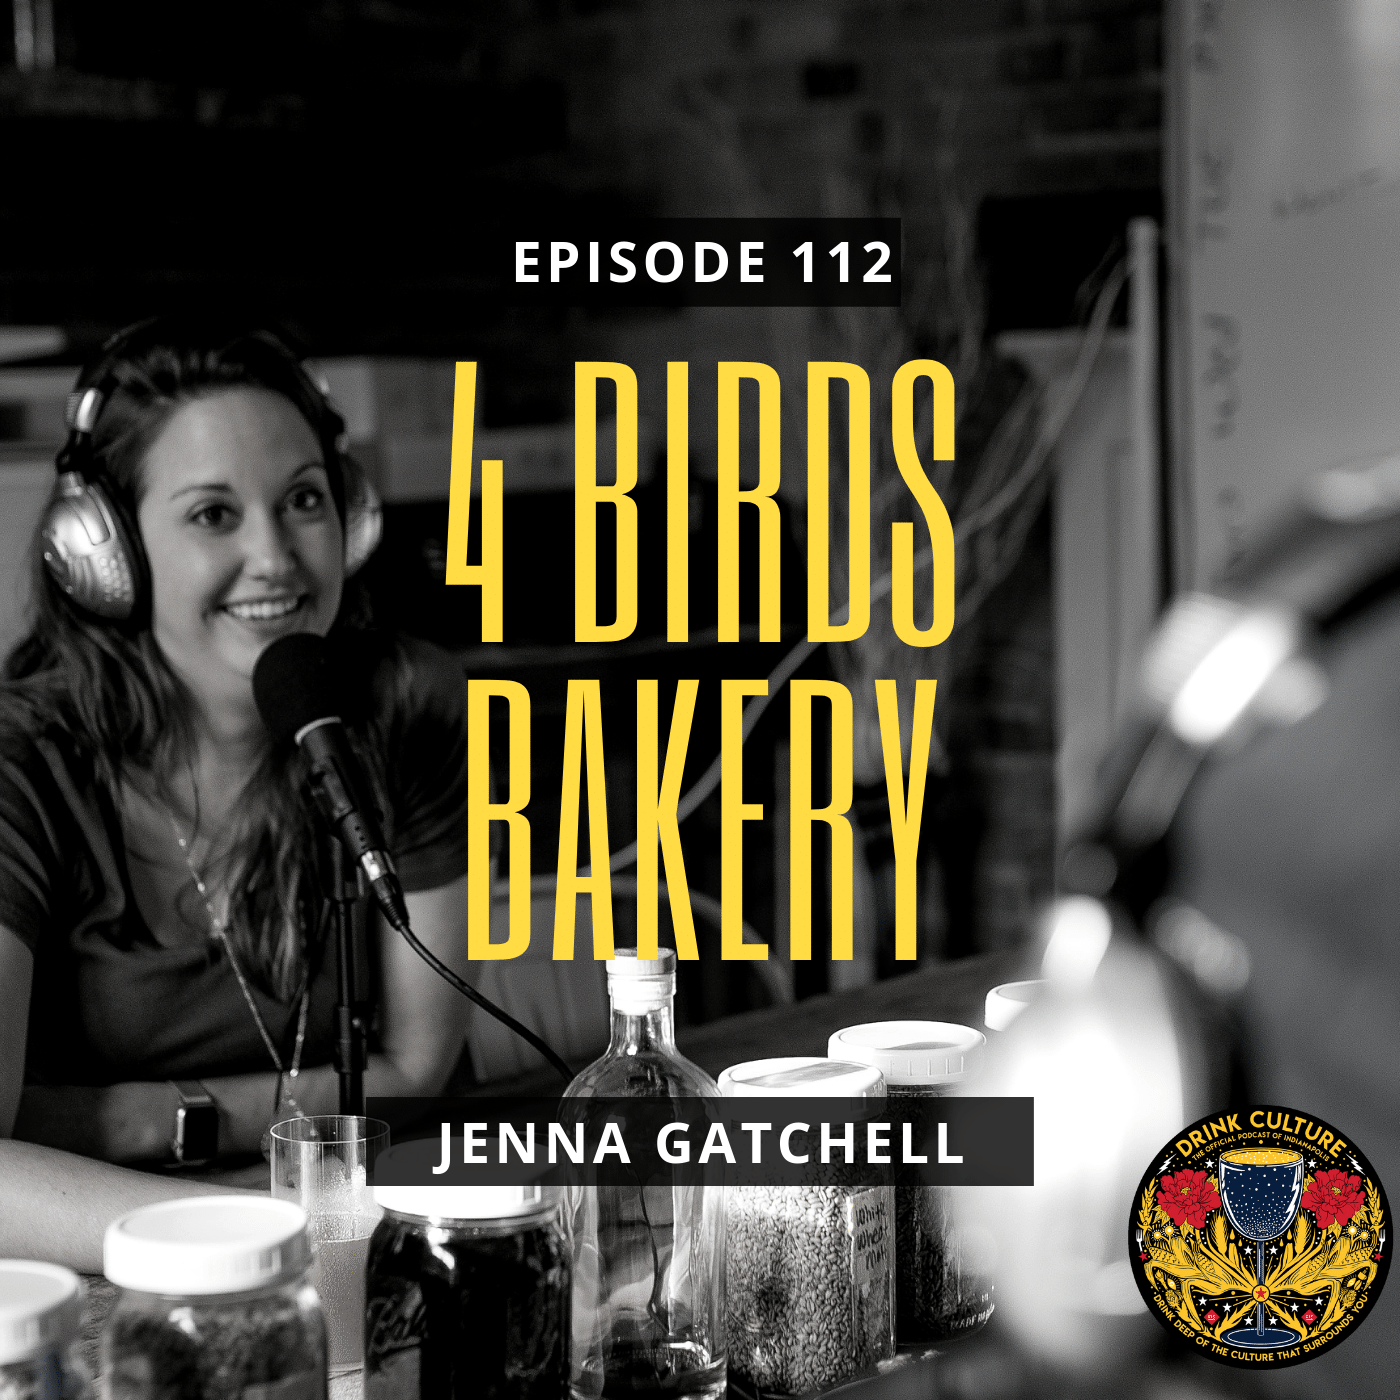 Episode 112: 4 Birds Bakery, Jenna Gatchell -